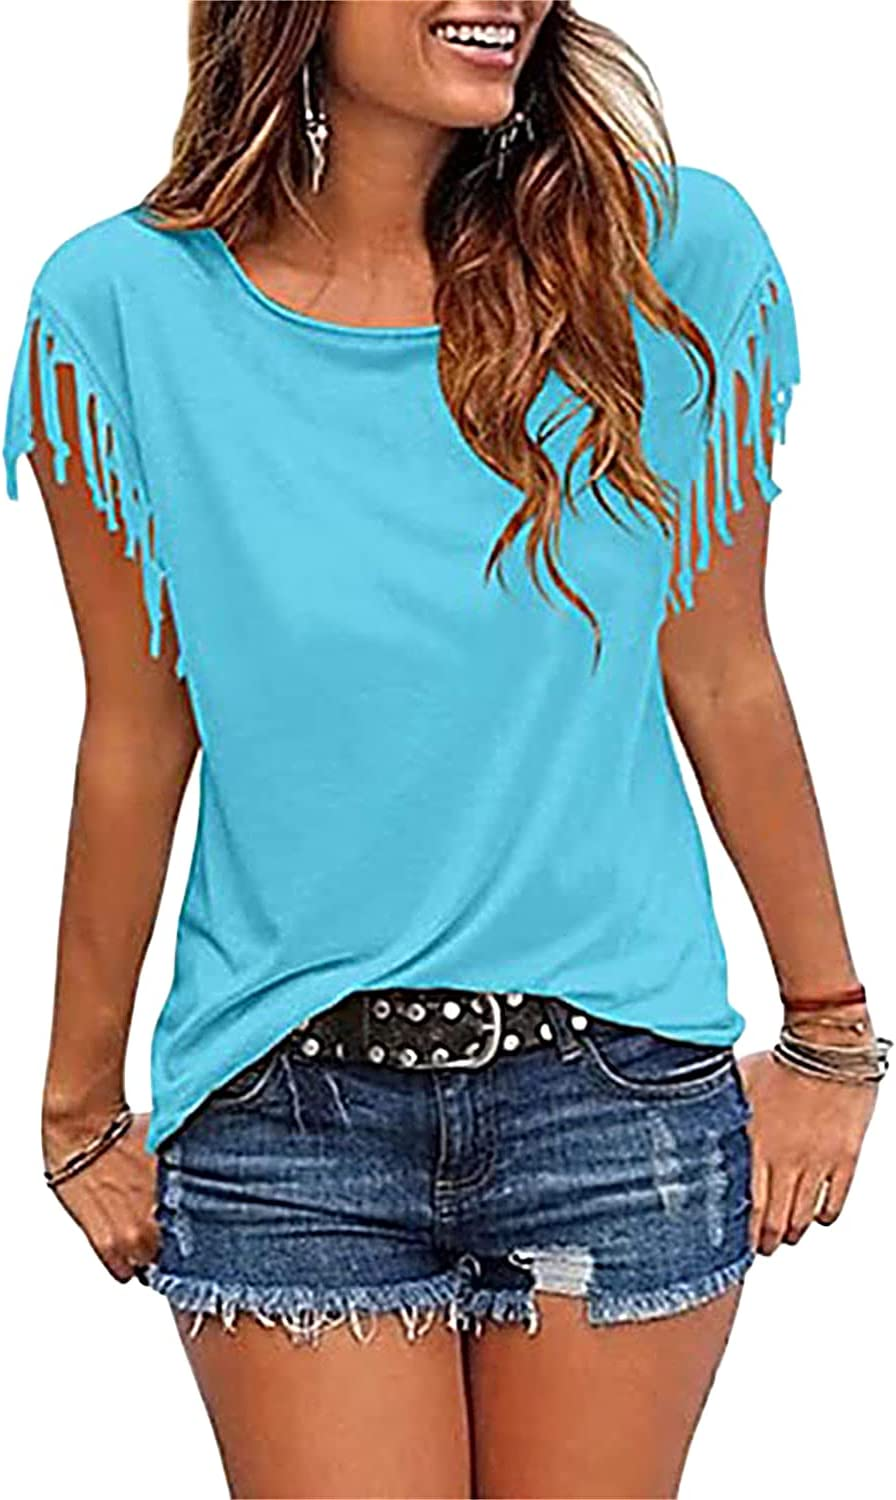 Fringed Short Sleeve Tops for Women Tassel Fashion Solid Color Tunic T-Shirt Casual Loose Fit Round Neck Tee Blouse (Light Blue,Small)